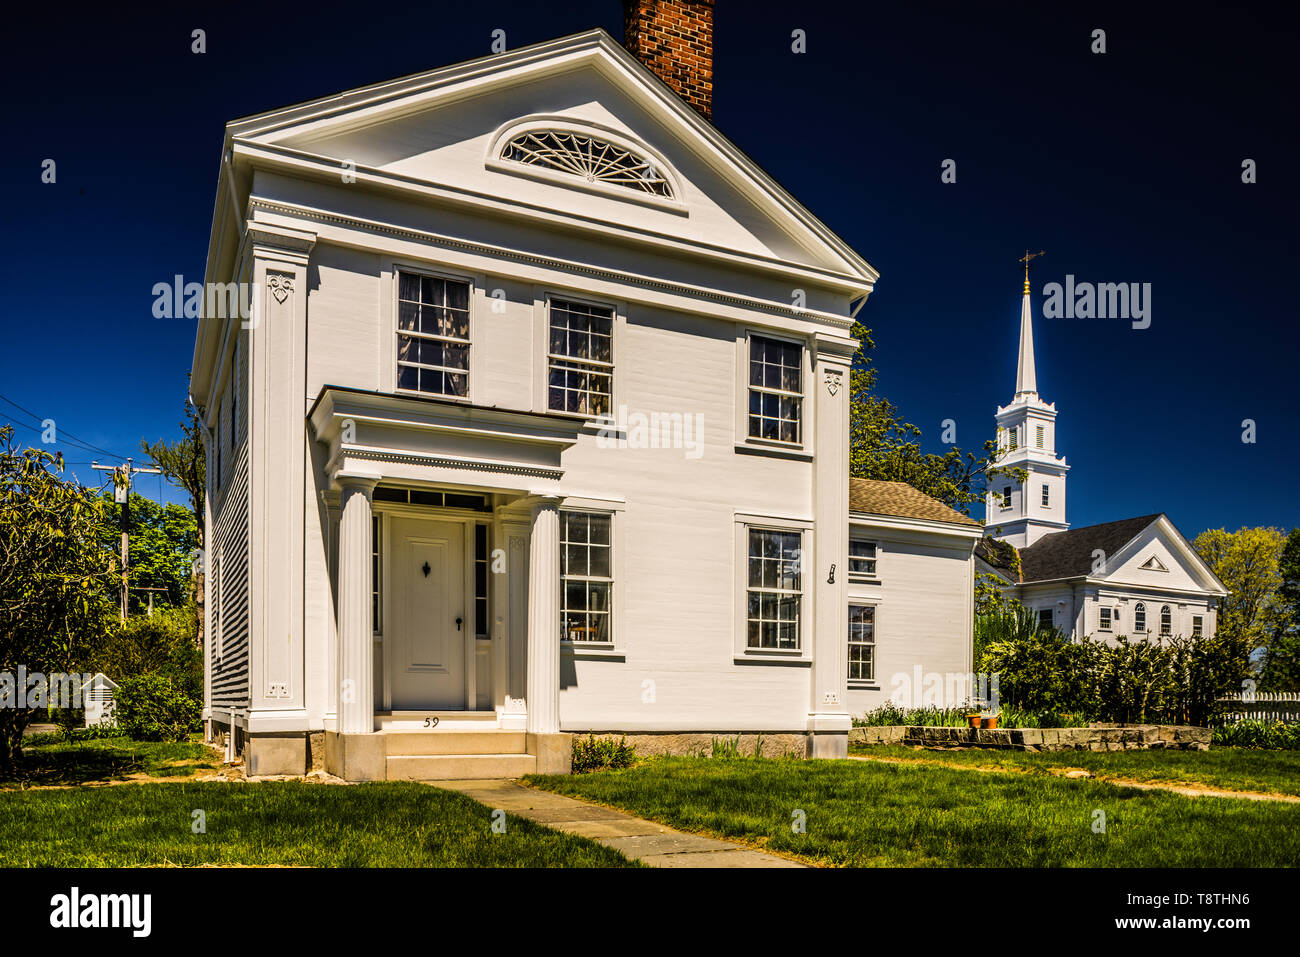 House Noank Historic District _ Noank, Connecticut, USA - Stock Image